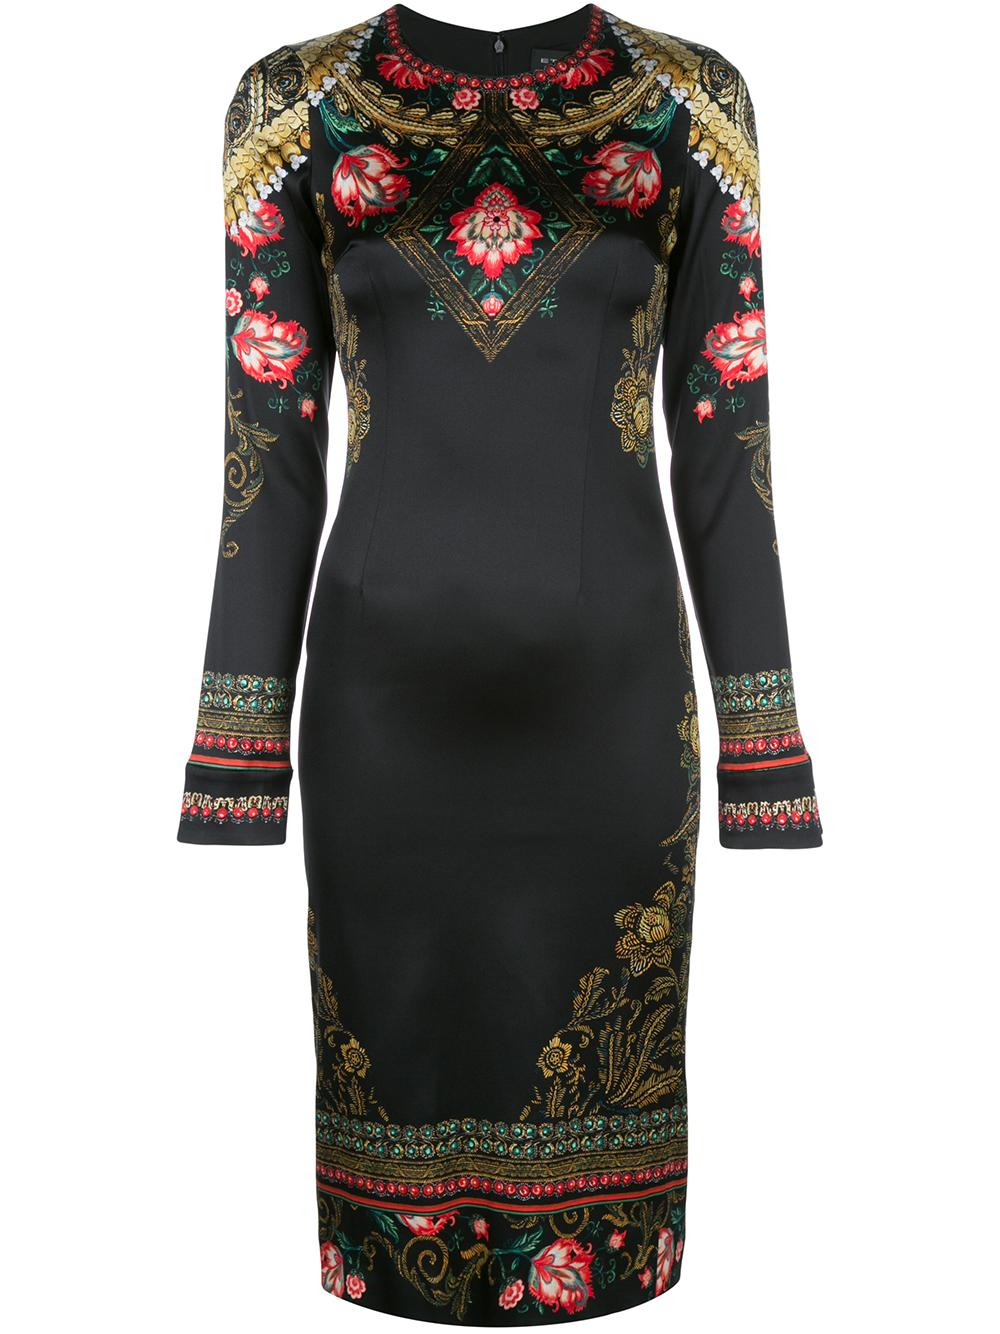 Long Sleeve Satin Slim Dress With Floral Top Item # 17818-5224